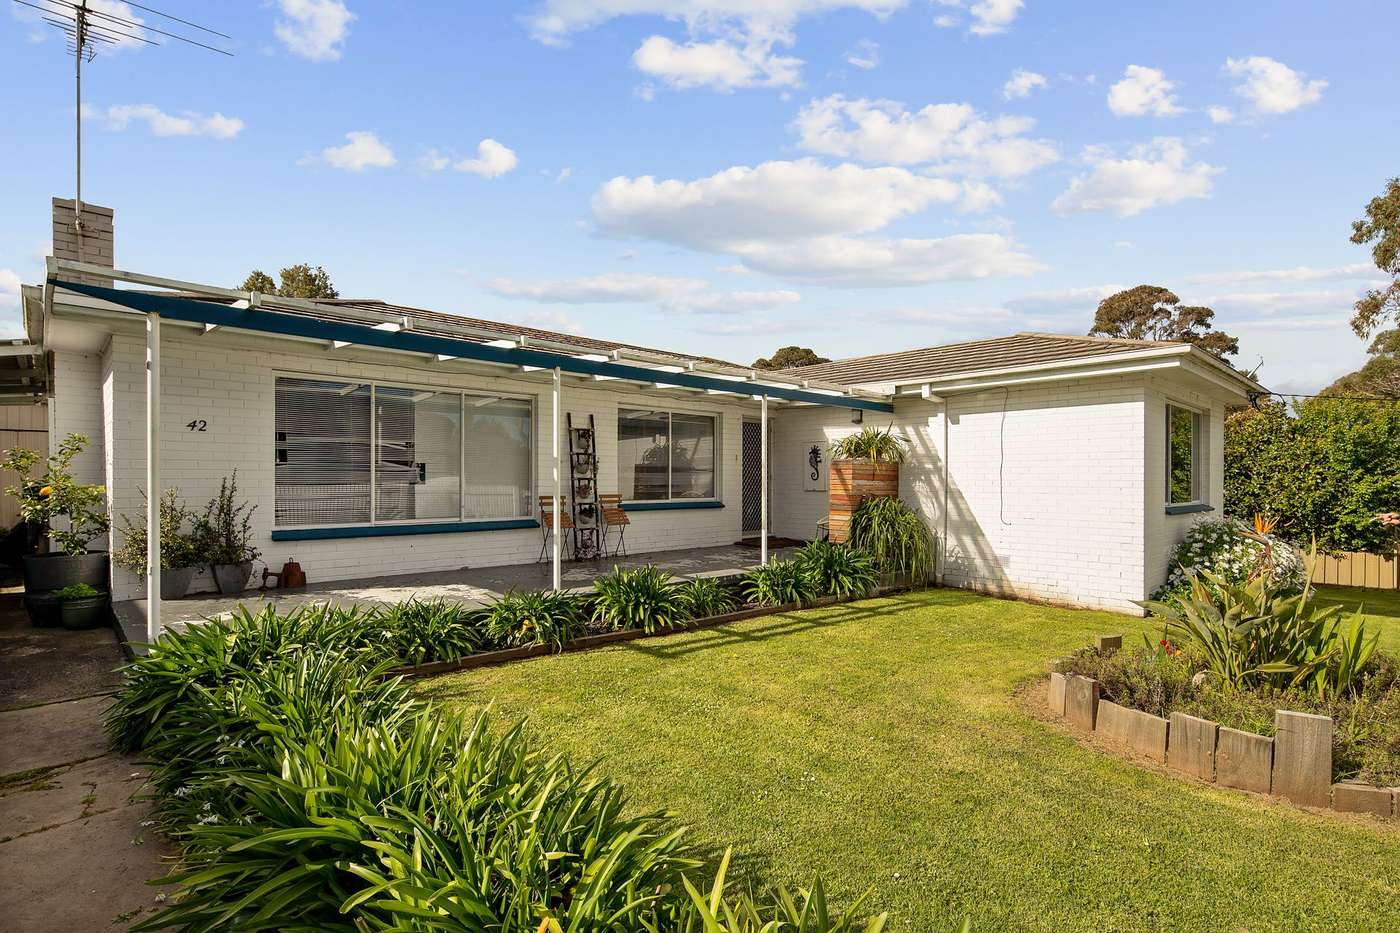 Main view of Homely house listing, 42 Church Street, Cowes, VIC 3922